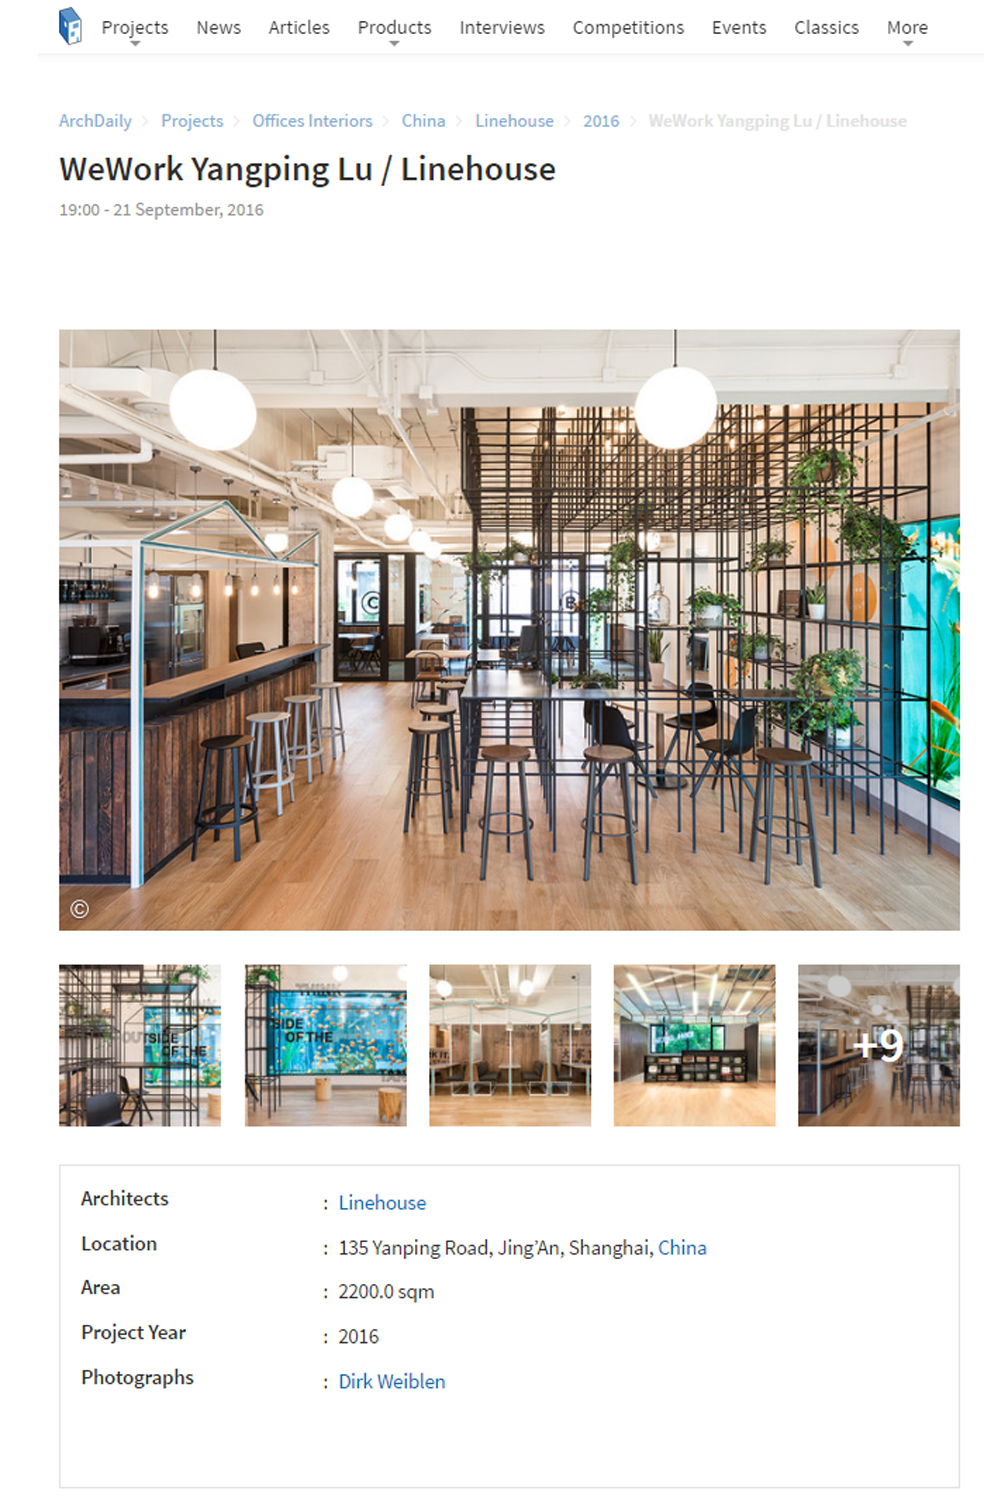 Archdaily, Wework Yanping, September 2016